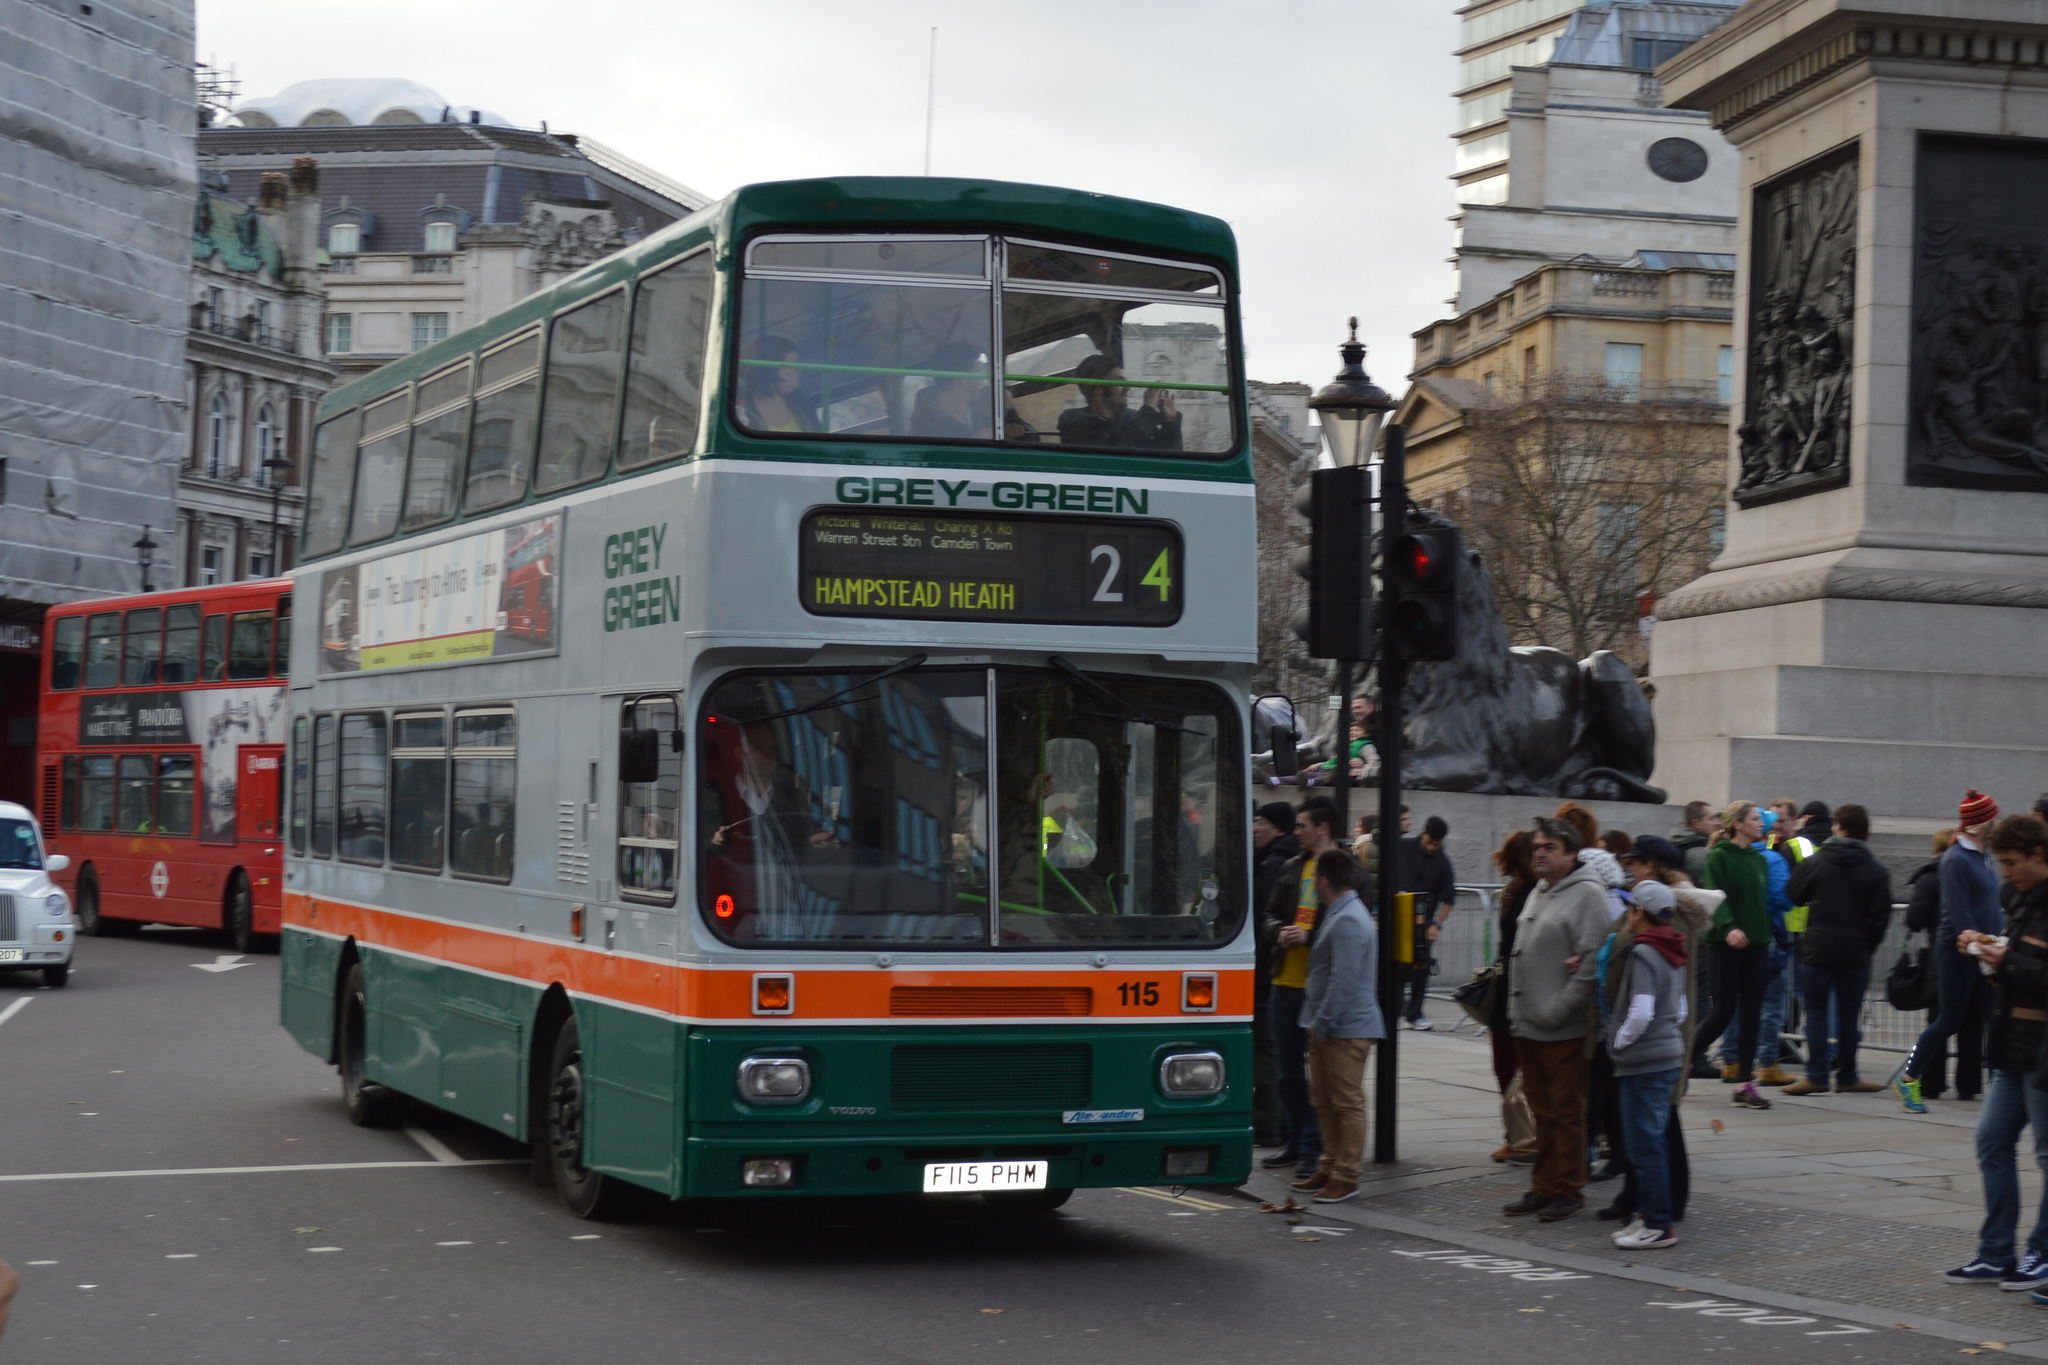 #AYearOfBuses 24: Pimlico – Hampstead Heath